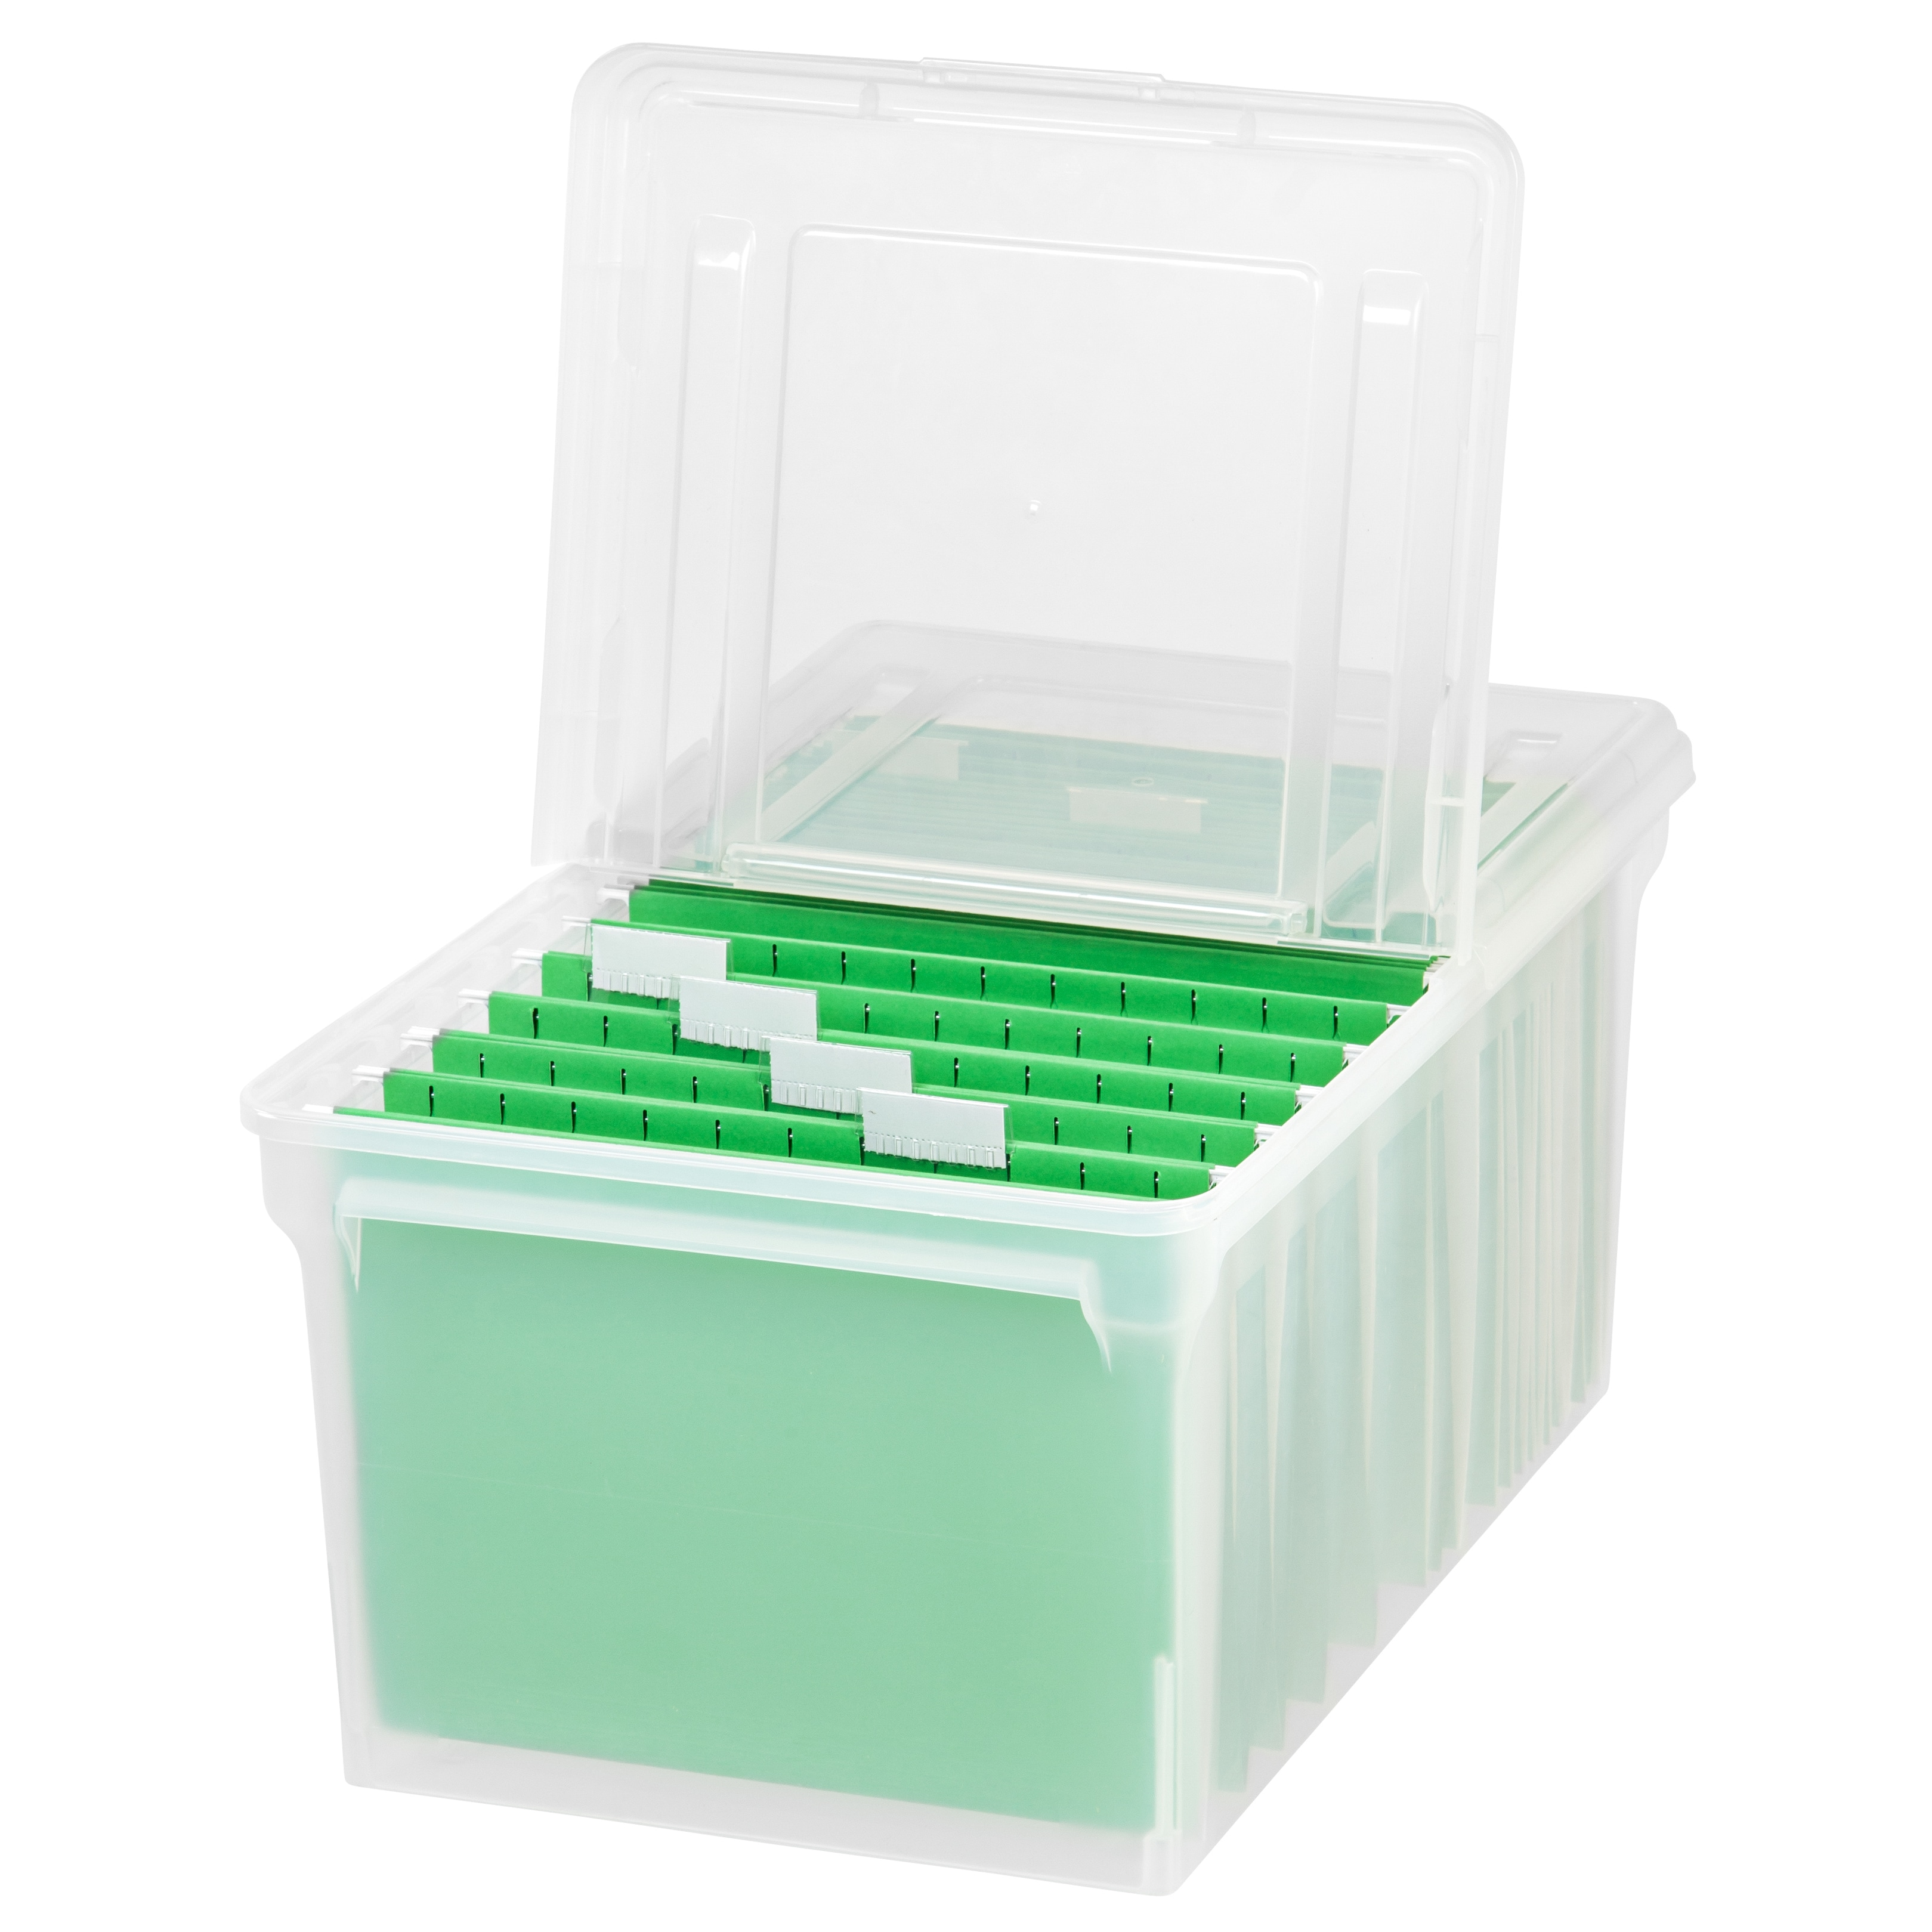 Details about IRIS Letter Size File Box Storage, 5 Pack, Clear Clear Letter